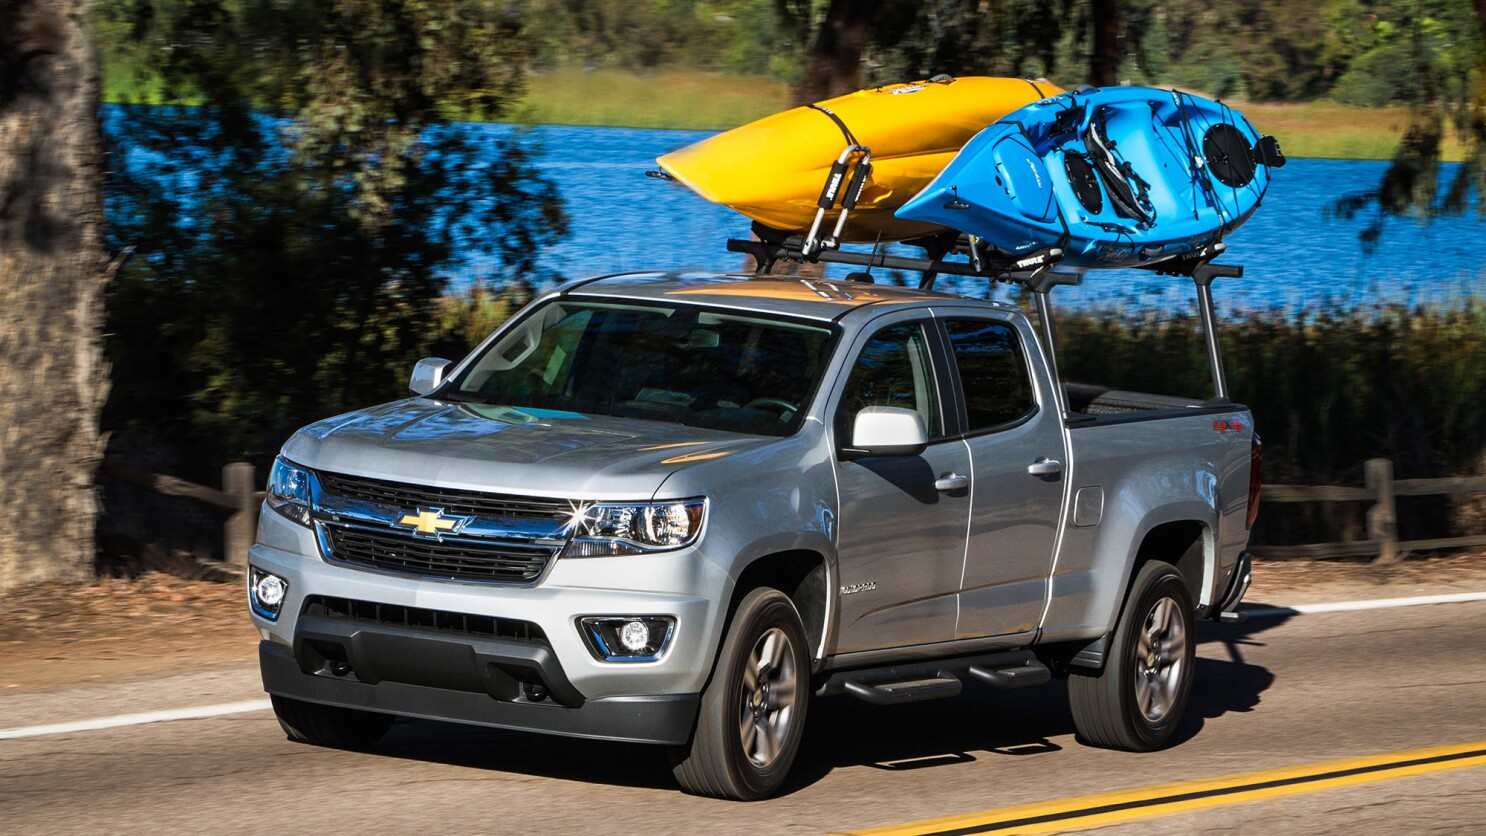 Review 2018 Chevy Colorado 4wd Lt Finally A Midsized Truck That Isn T Built Too Big Los Angeles Times